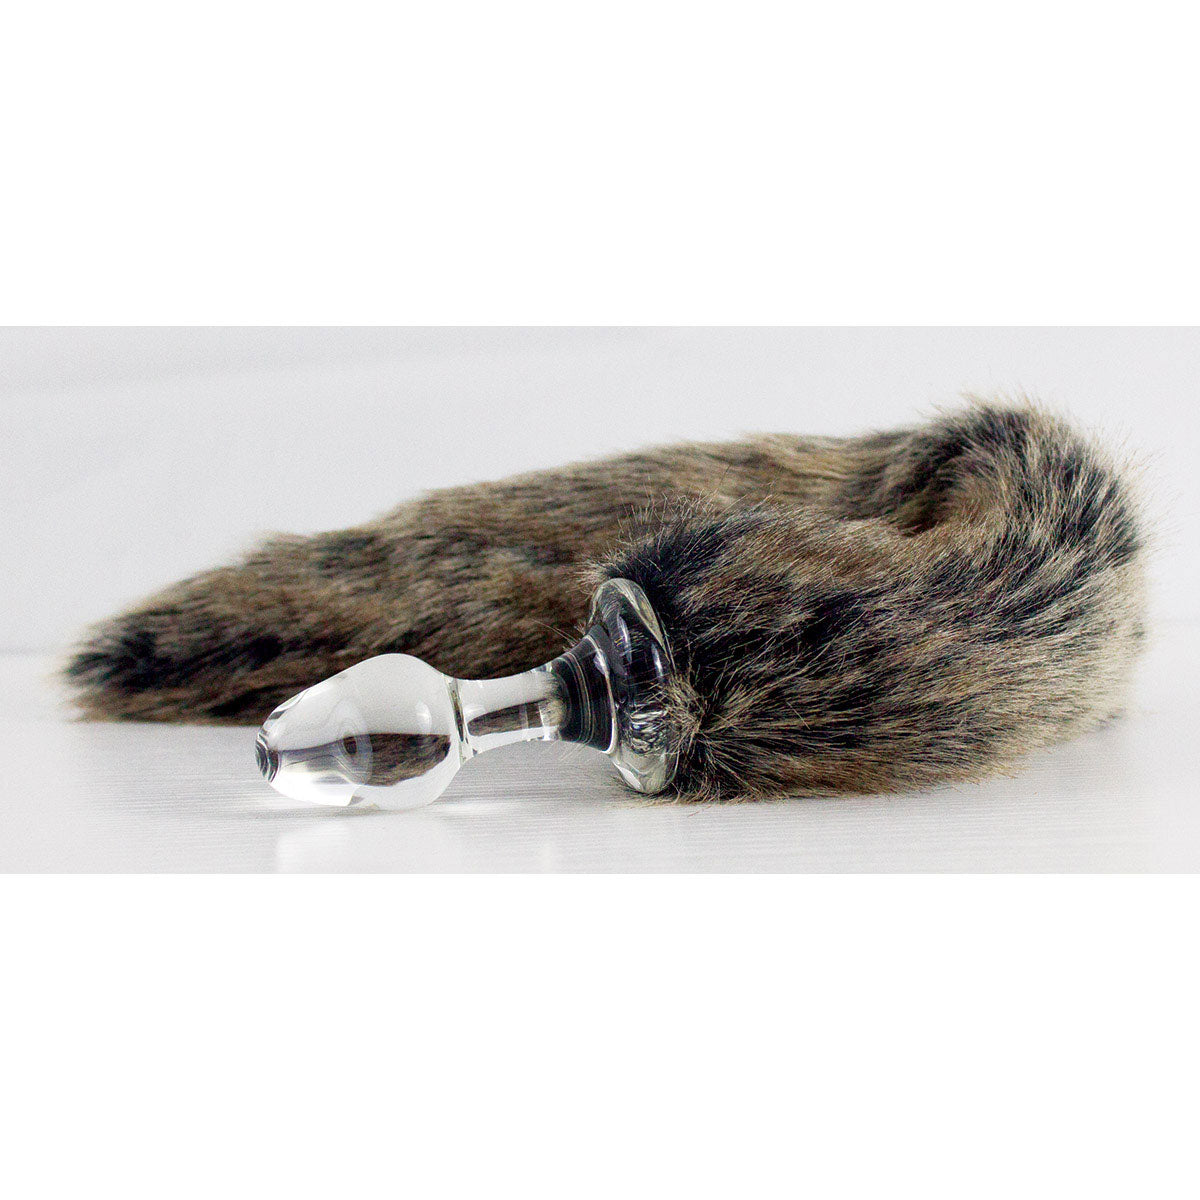 Crystal Delights Crystal Minx Tail Butt Plug Grey Wolf